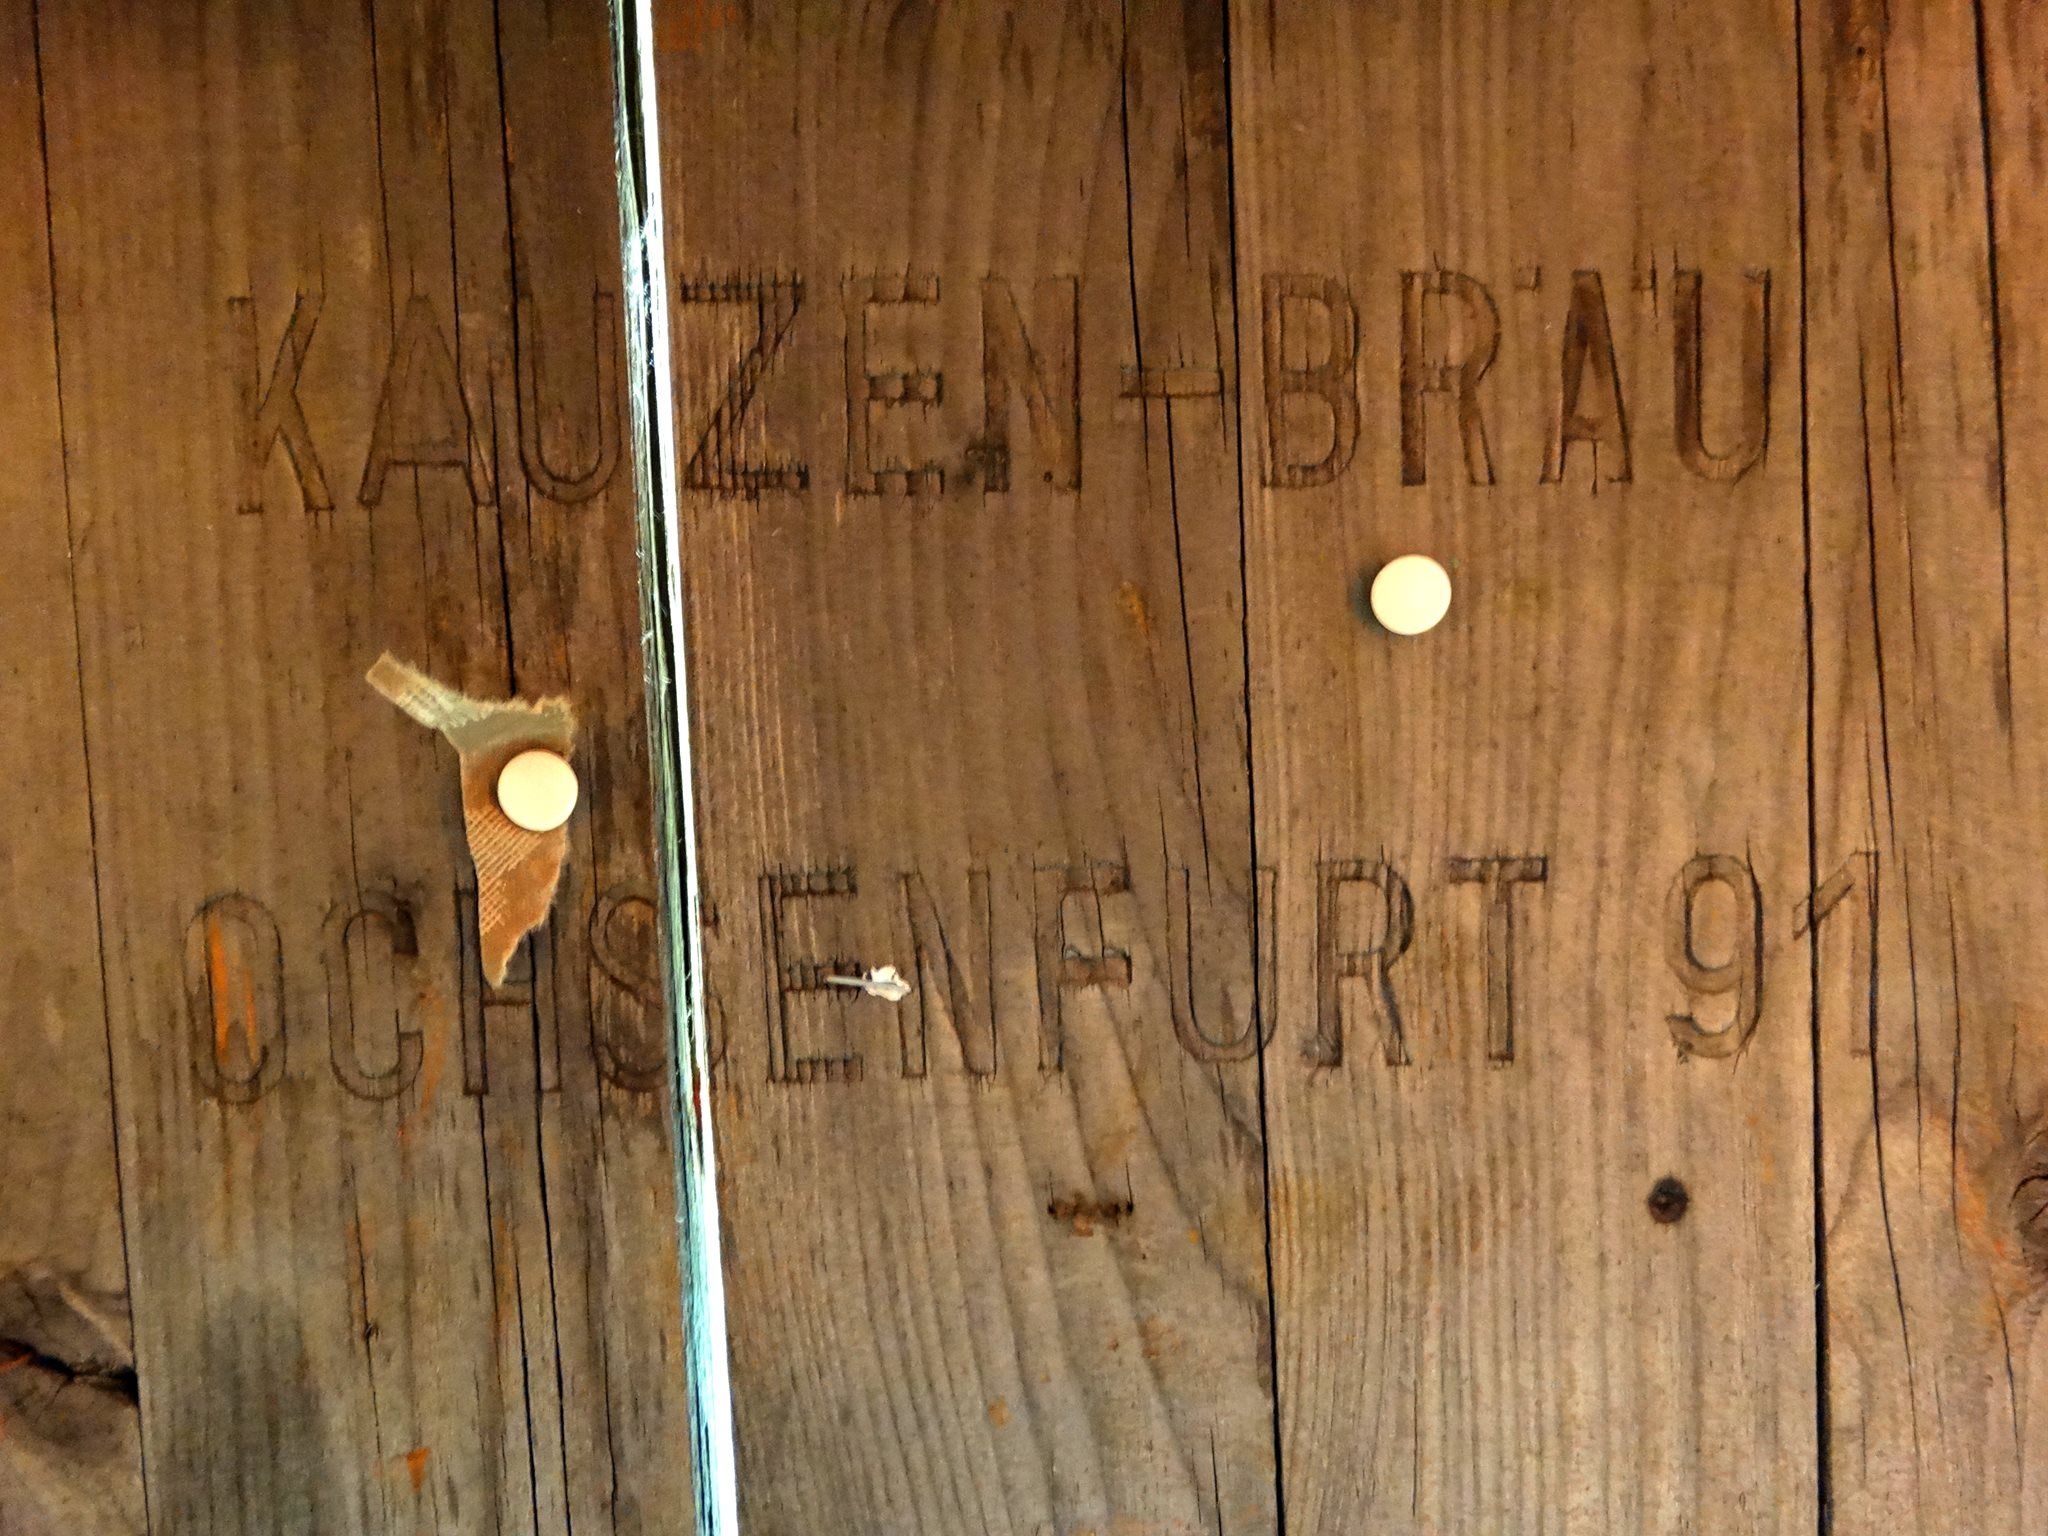 The Table Was Manufactured By The Kauzen Brau Brewery In The Bavarian Town Of Ochsenfurt It Was One Of Many That Line Upscale Furniture Beer Tent Garden Table